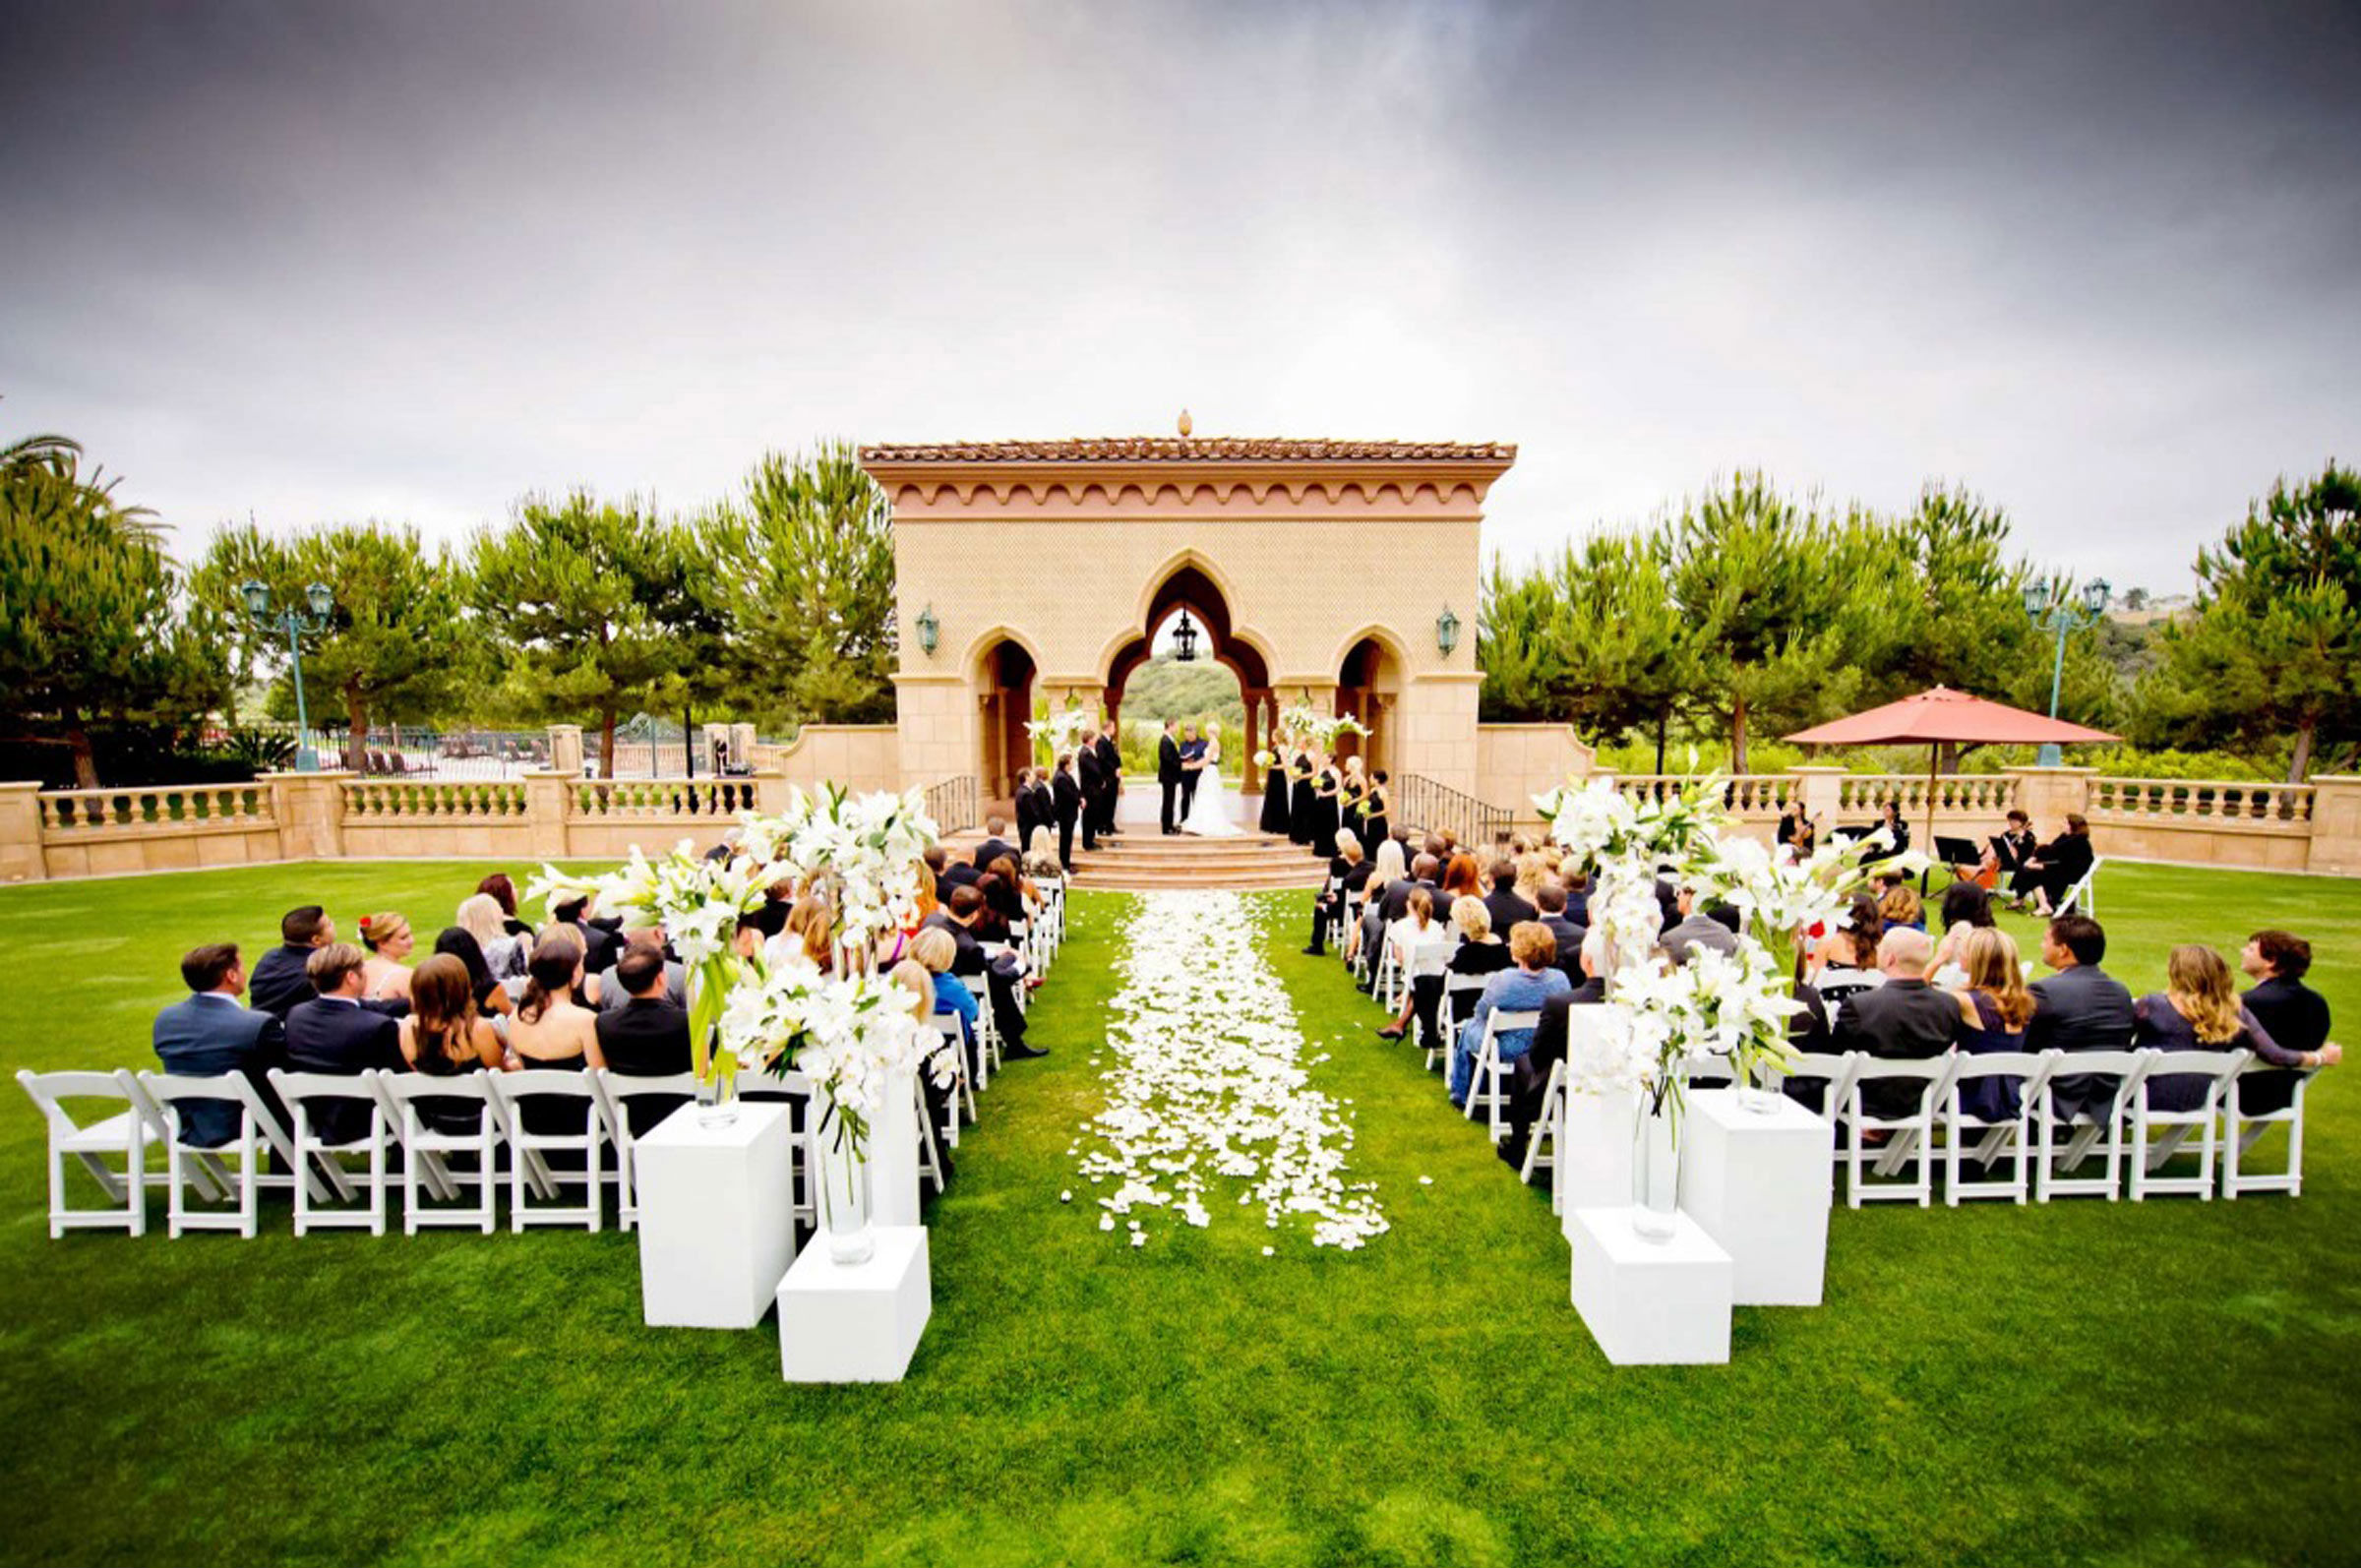 Top north county san diego wedding venues your north county for Best wedding locations in us